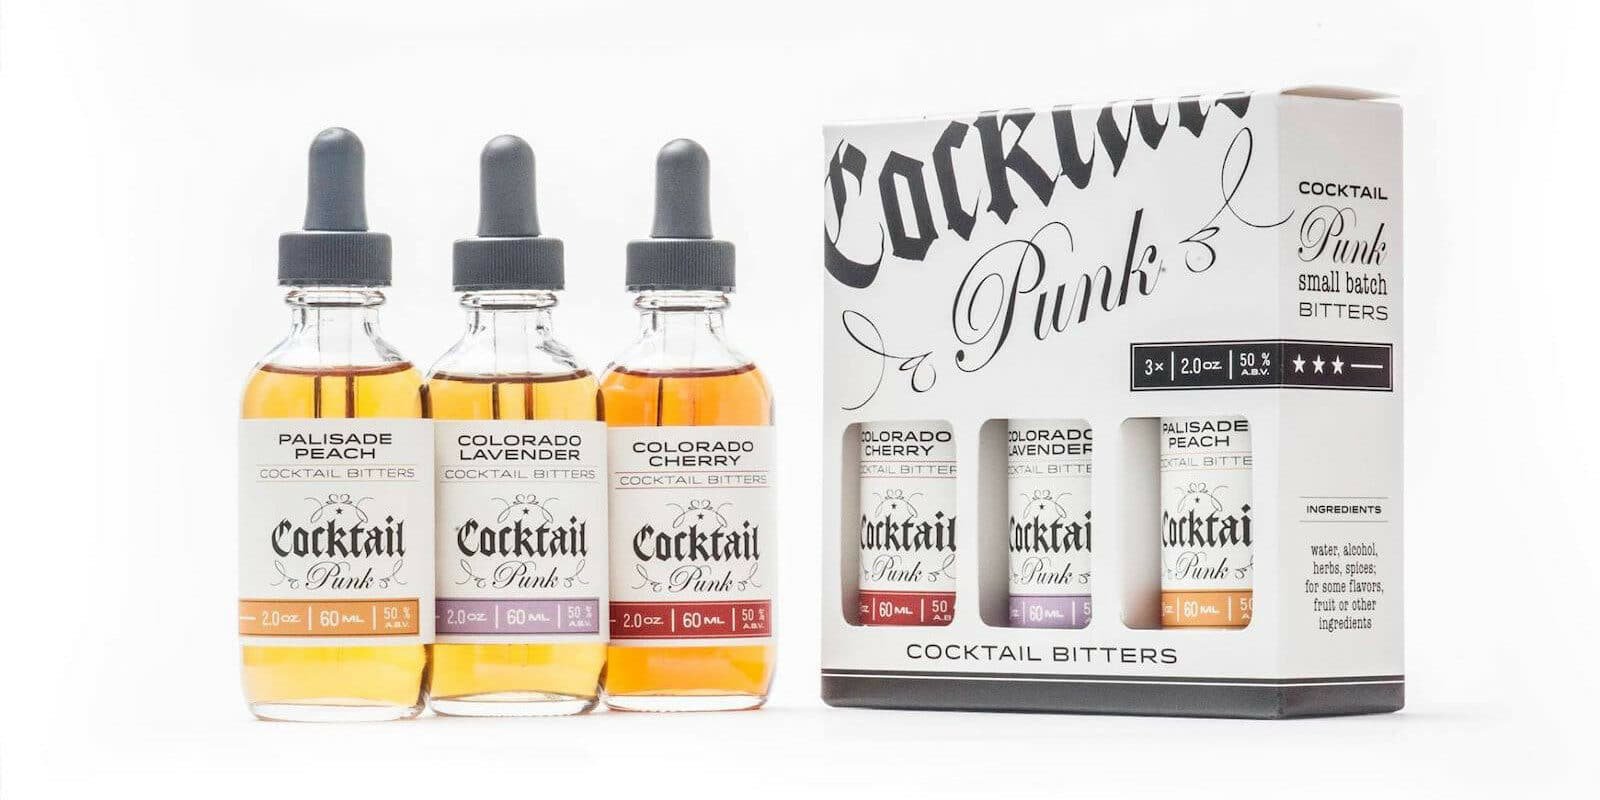 Image of Cocktail Punk bitters and sets